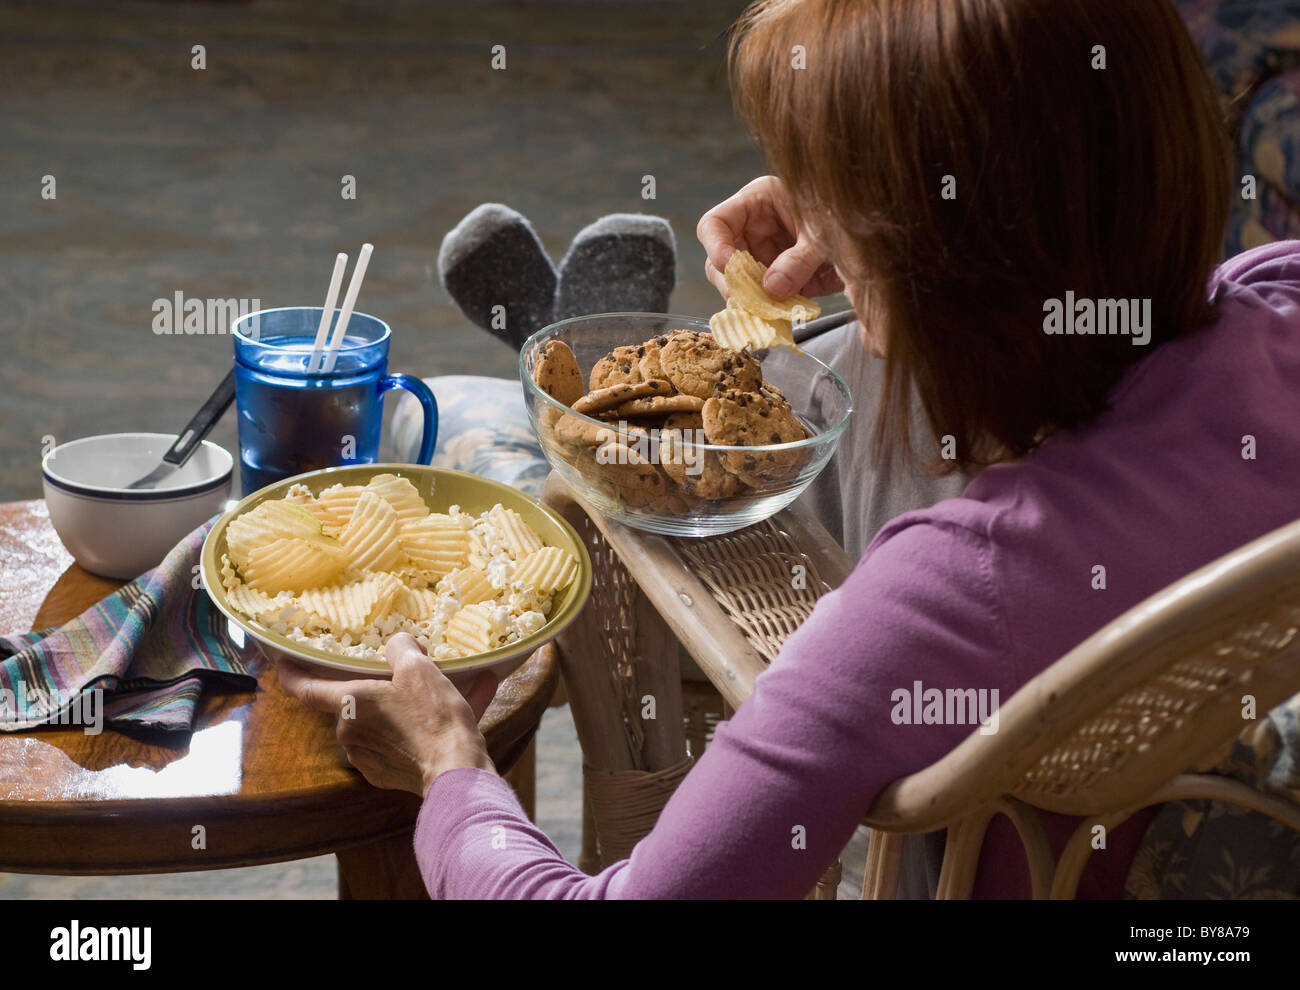 woman seated eating junk food - Stock Image